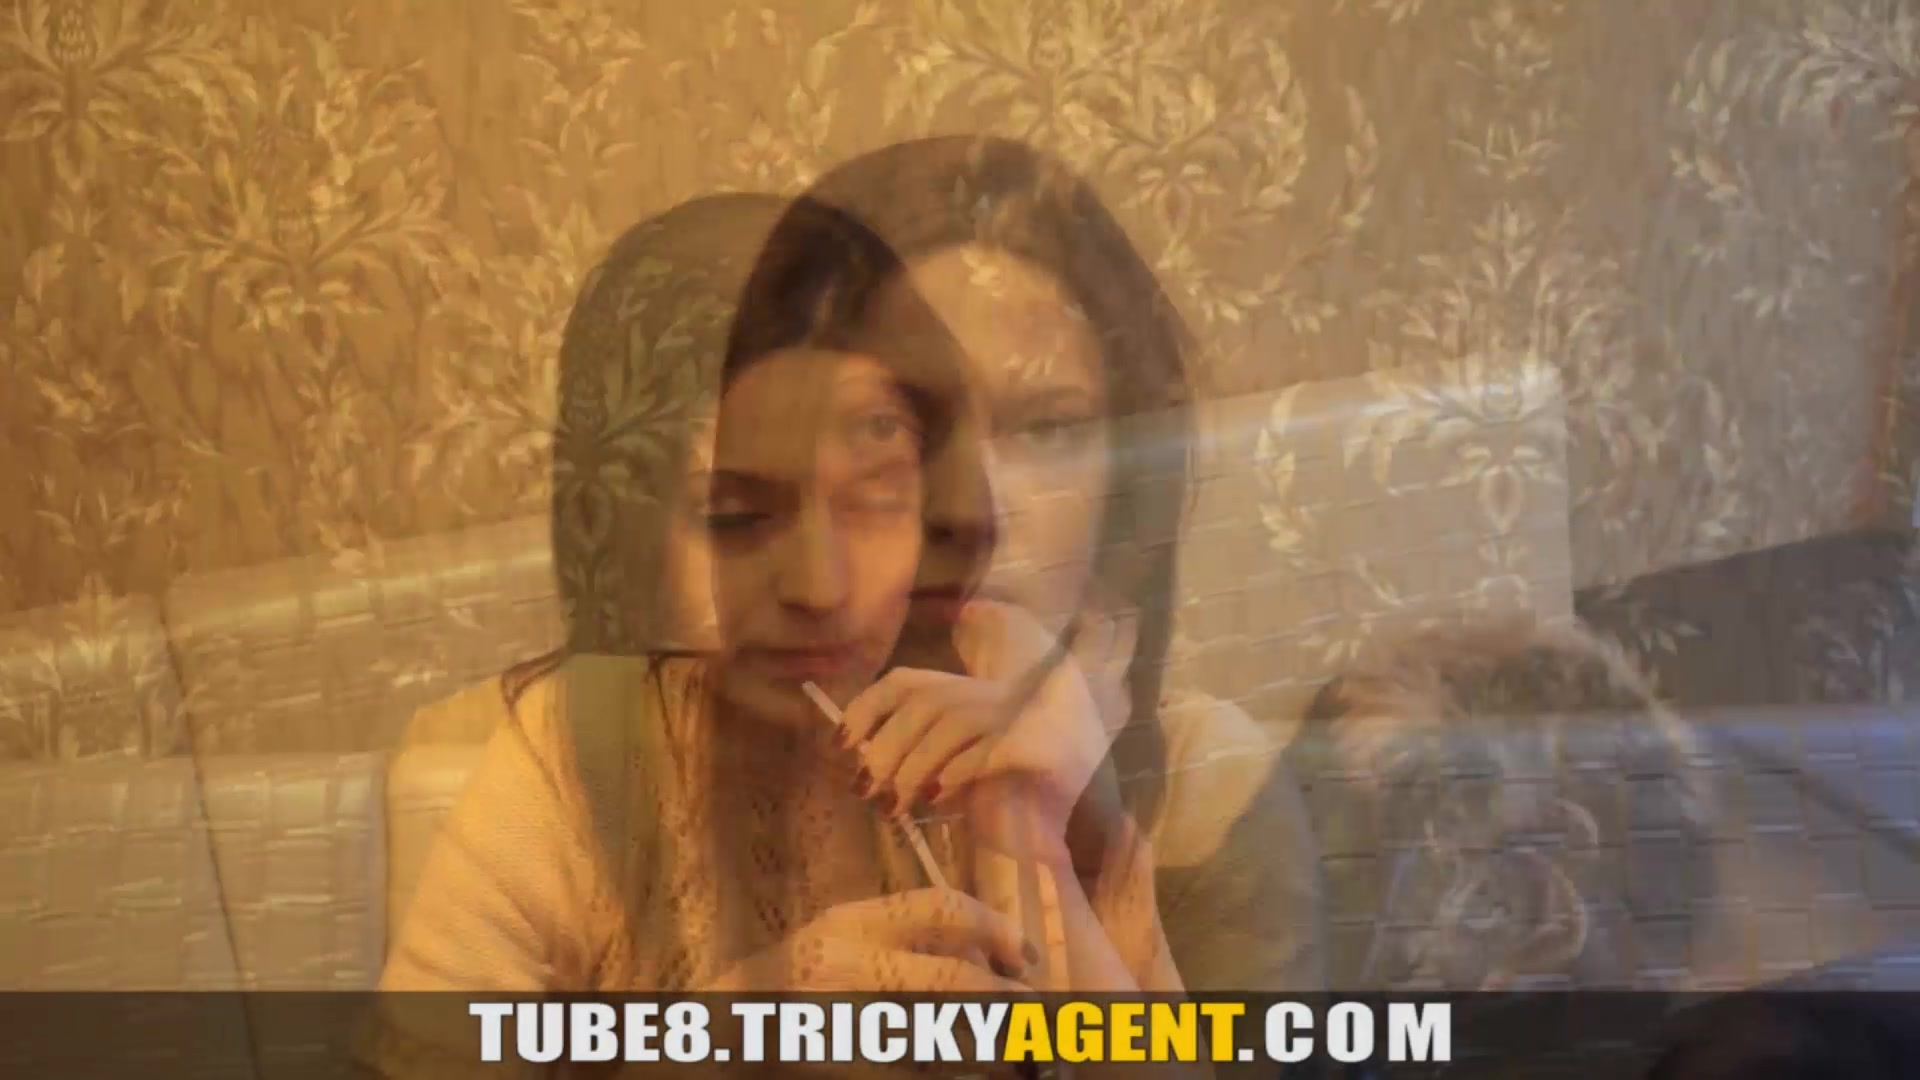 Tricky Agent - Shes got everything for porn